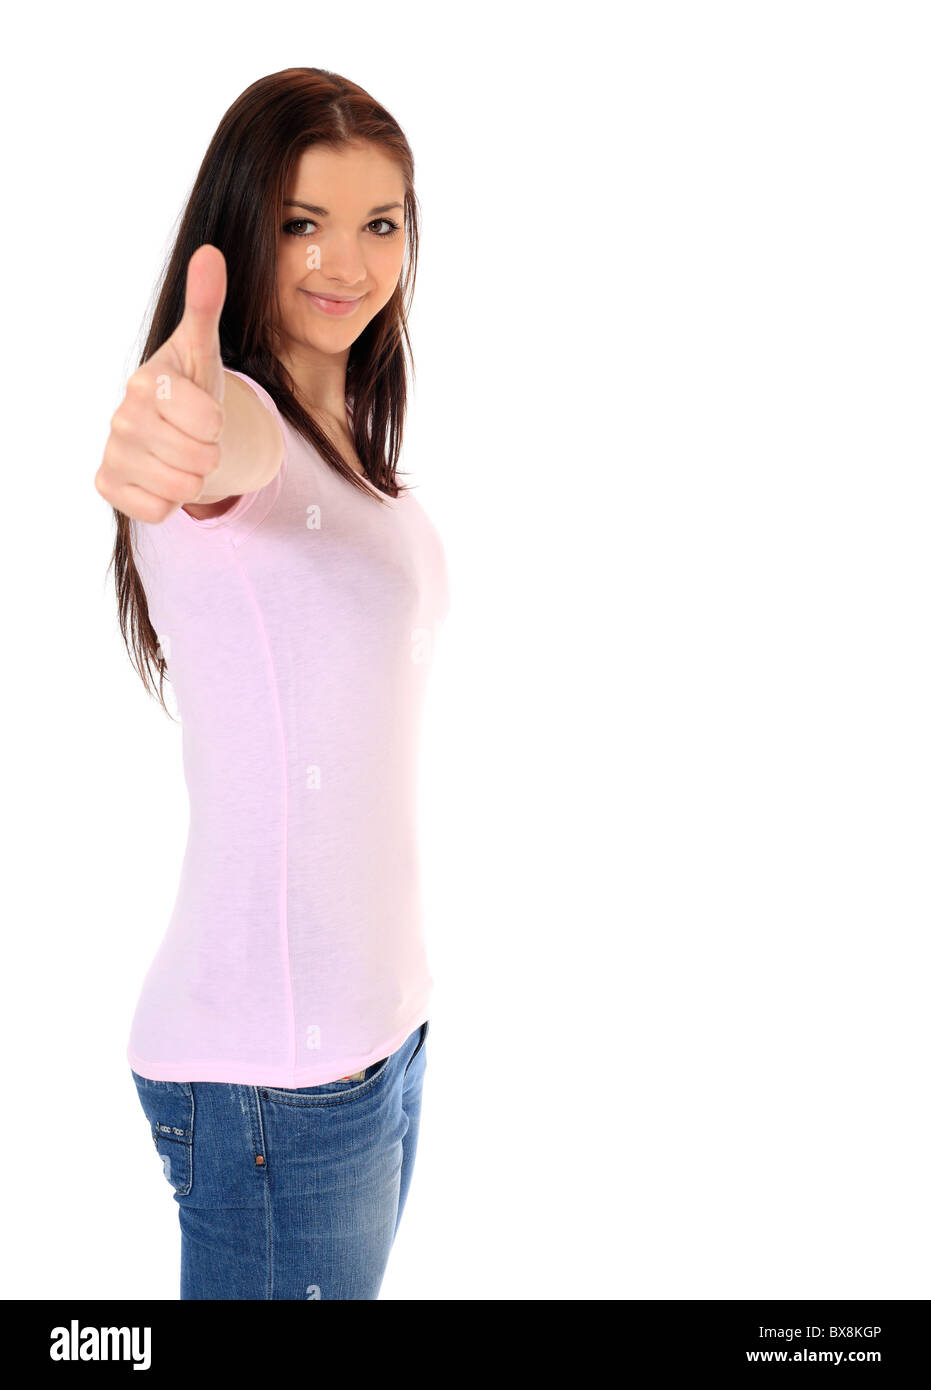 Attractive teenage girl making positive gesture. All on white background. - Stock Image